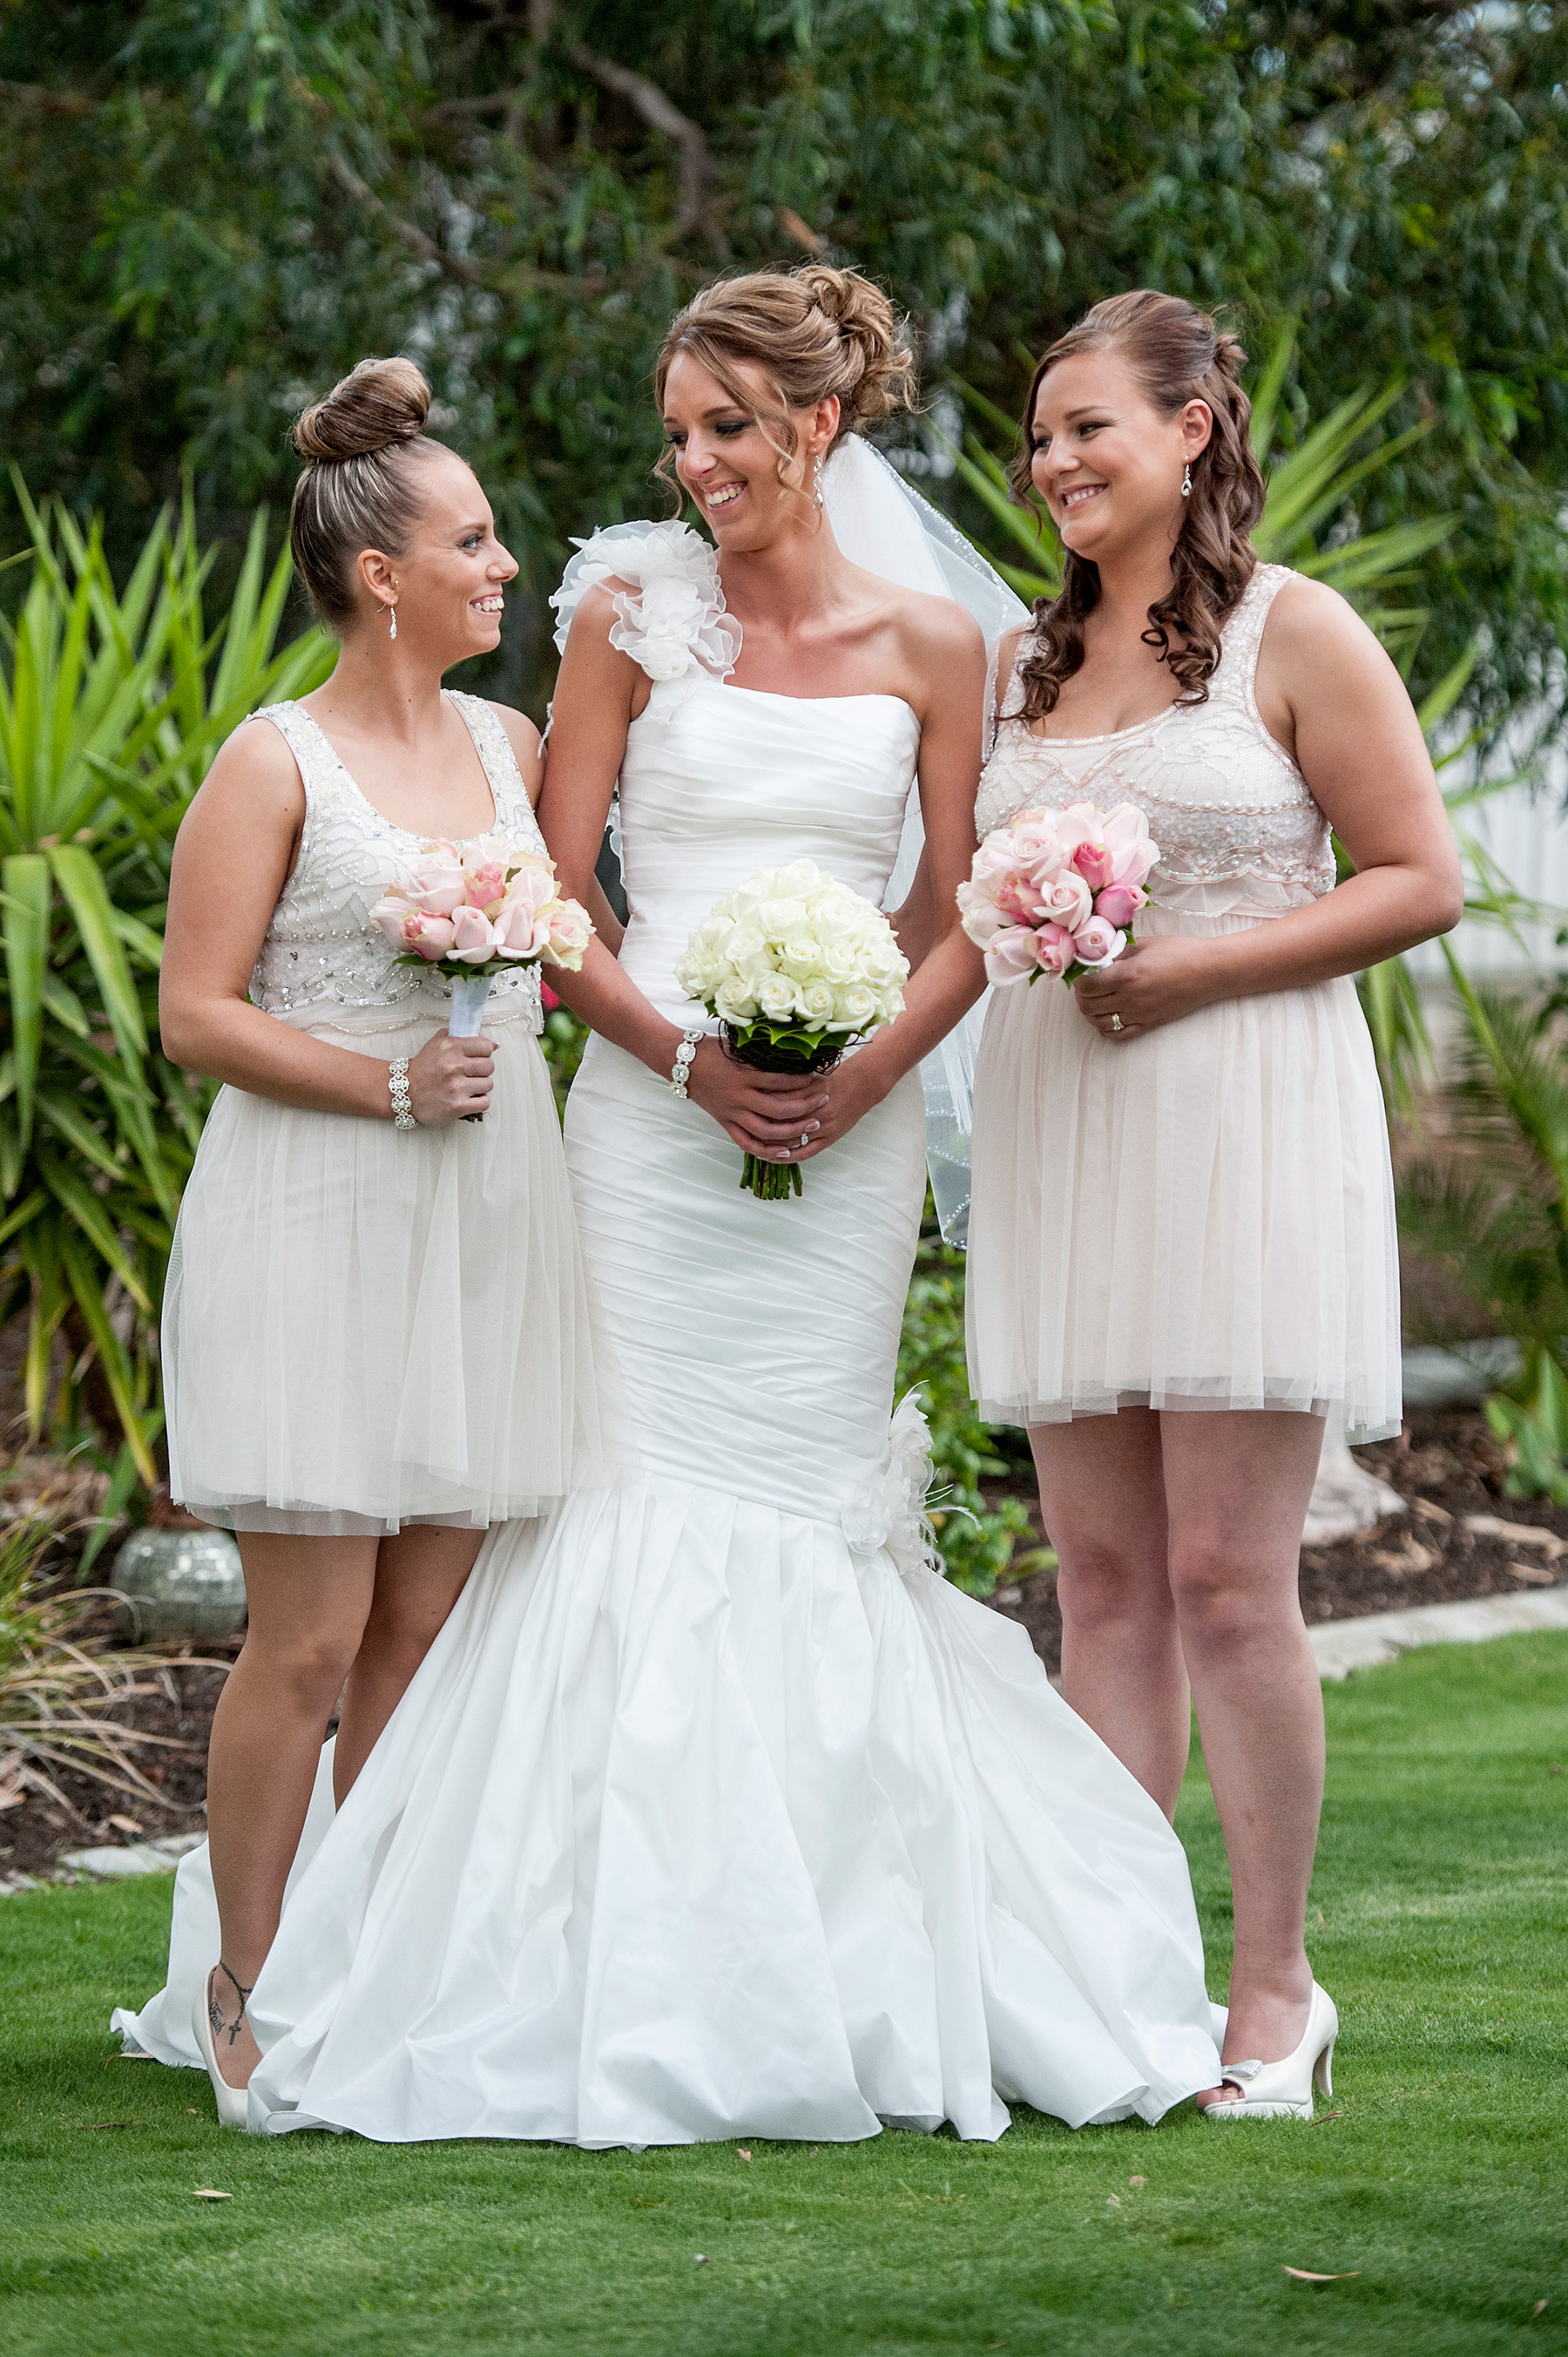 Simple Wedding Dress Adelaide : Had an elianna moore gown from adelaide brides bloom and as